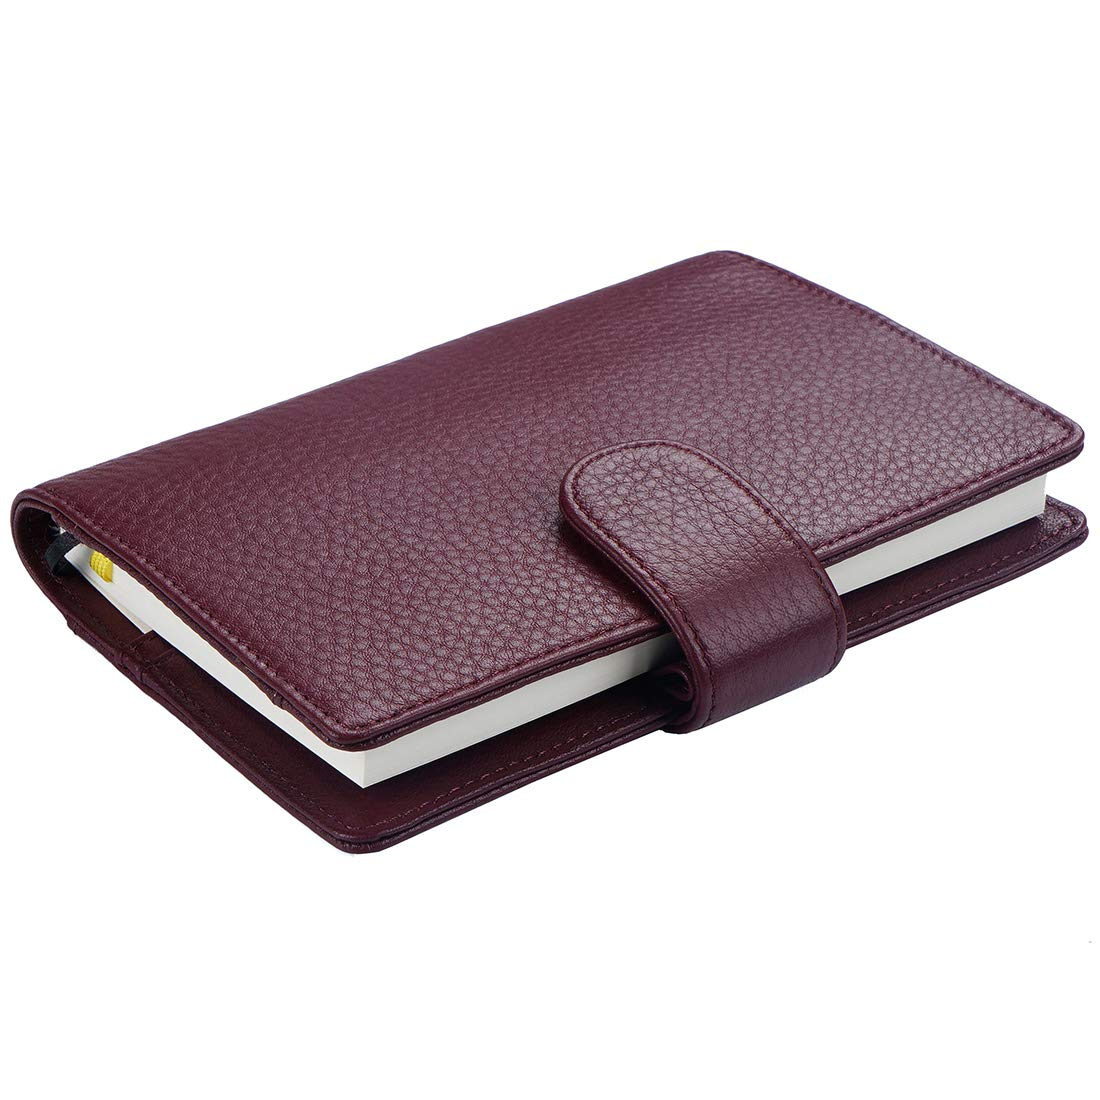 Planner Cover for Hobonichi Techo, Midori MD, Stalogy A6 Notebooks - Moterm Genuine Leather Notebooks Cover with Pen Loop, with Card Slots and Pockets (A6, Dark Purple) by Moterm